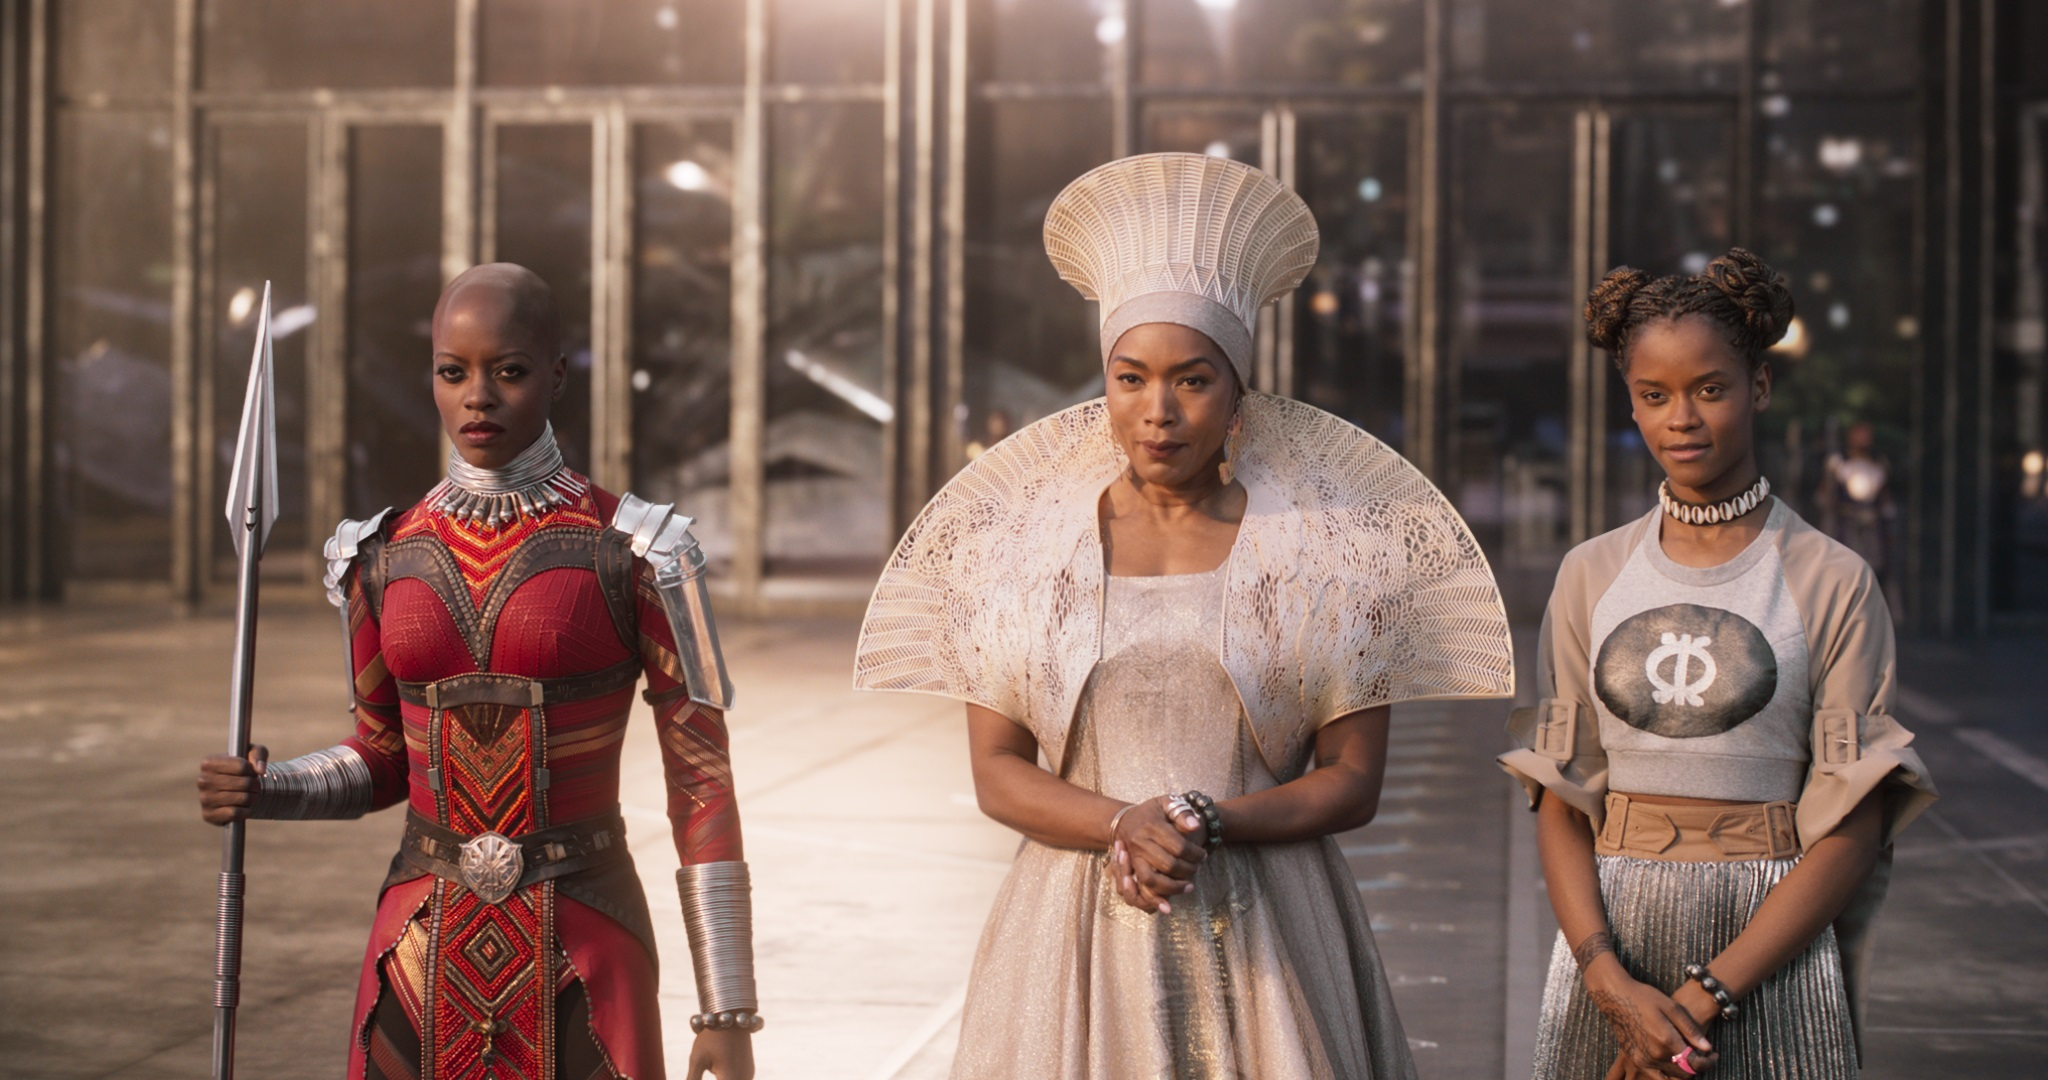 Queen Ramonda with 3D-printed crown and mantle | Image courtesy of Marvel/Disney/Black Panther